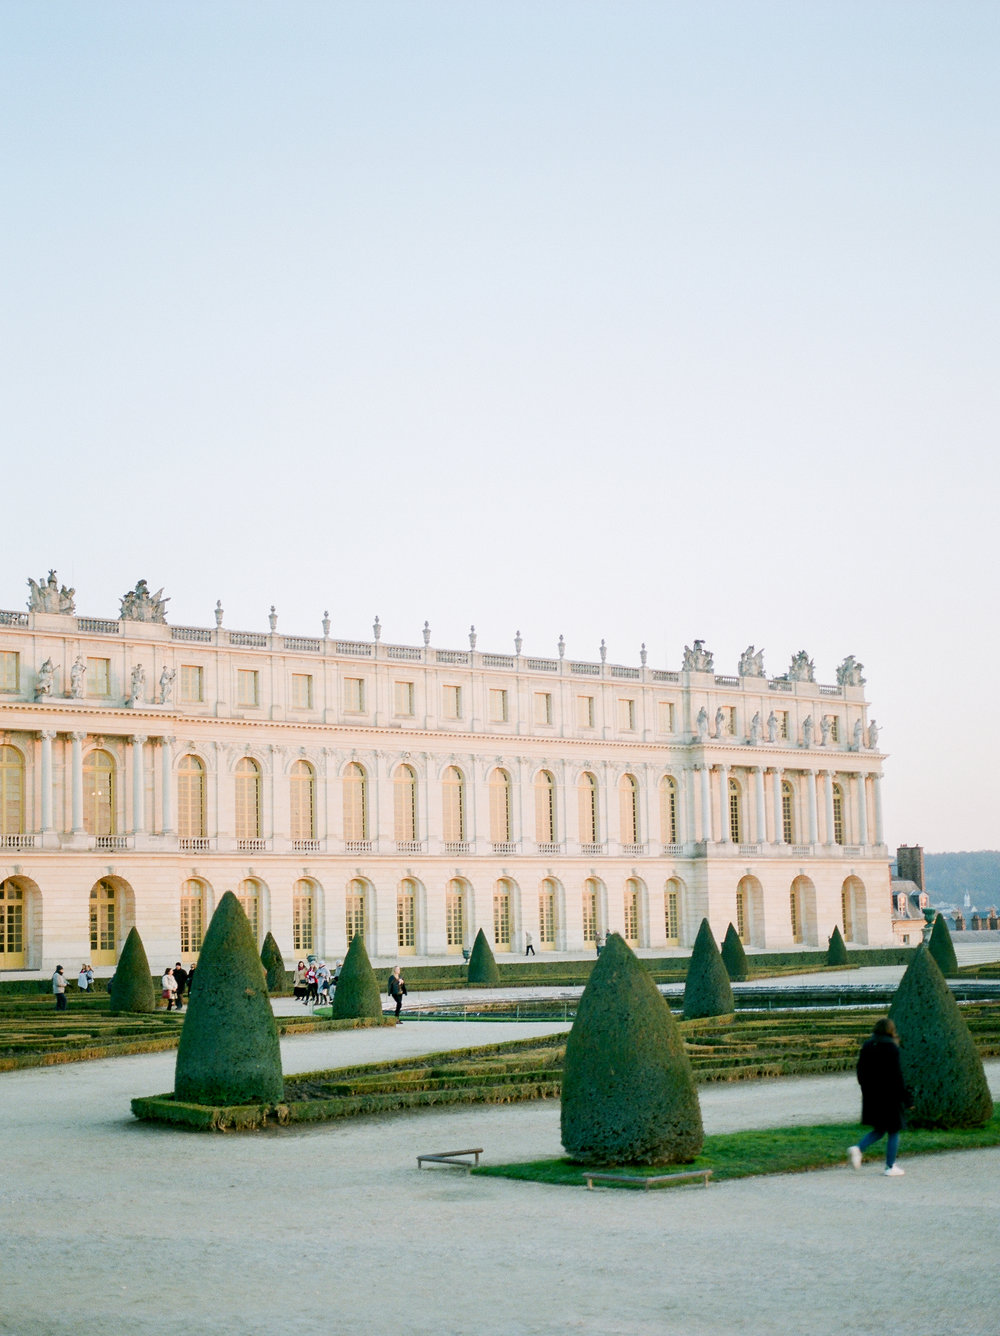 chateau-de-versailles-in-the-winter.jpg